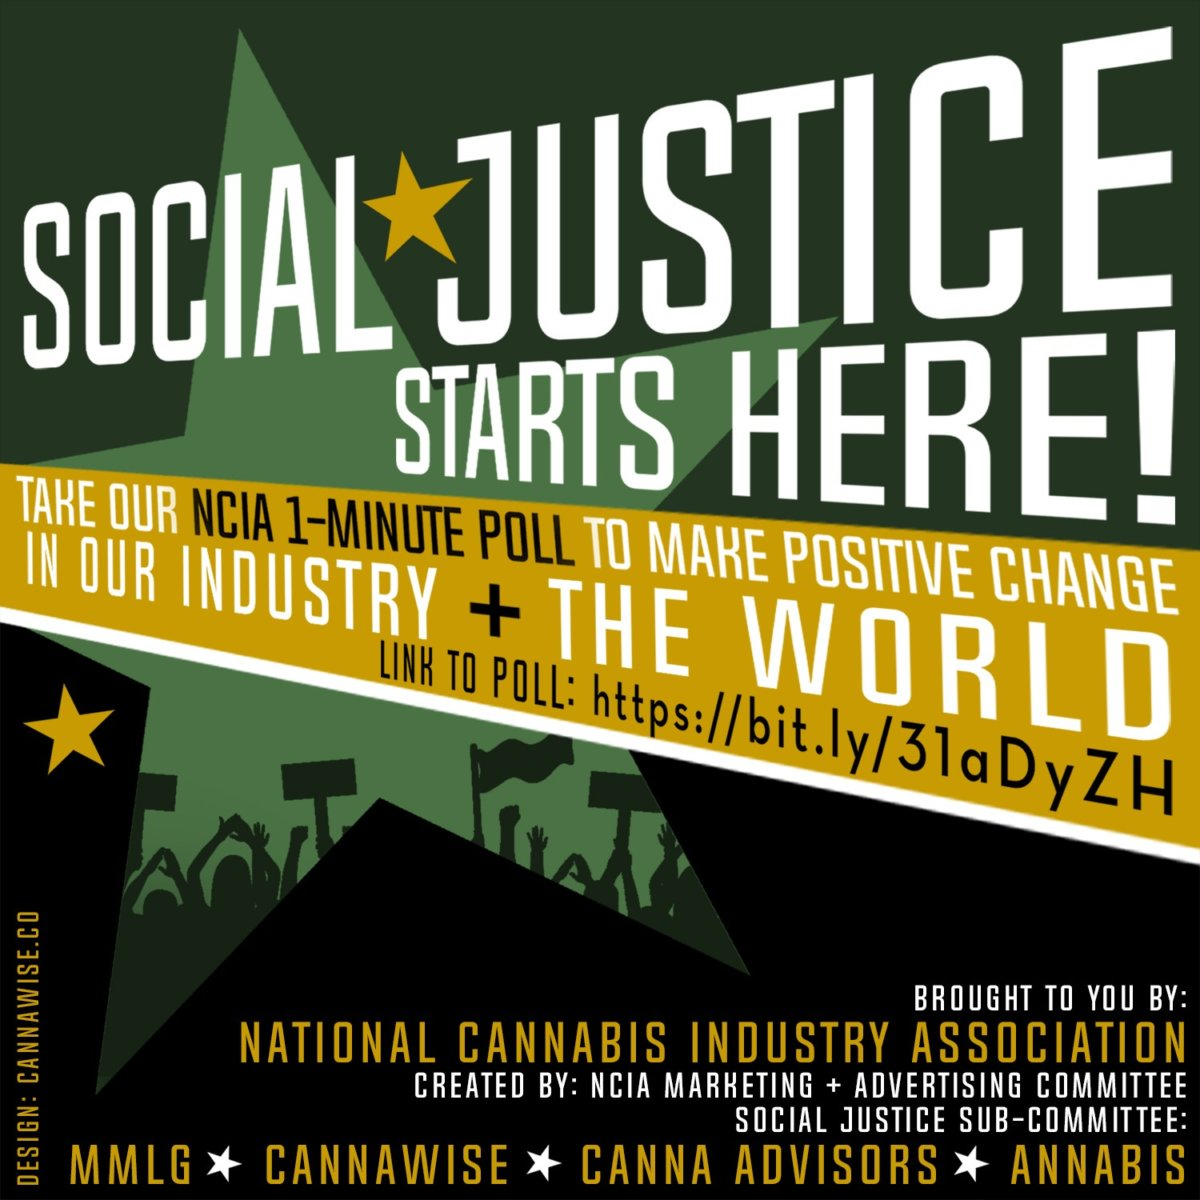 Committee Blog: Social Justice in the Cannabis Industry – Your Answers Will Take Minutes, But The Impact Could Be Long-Lasting